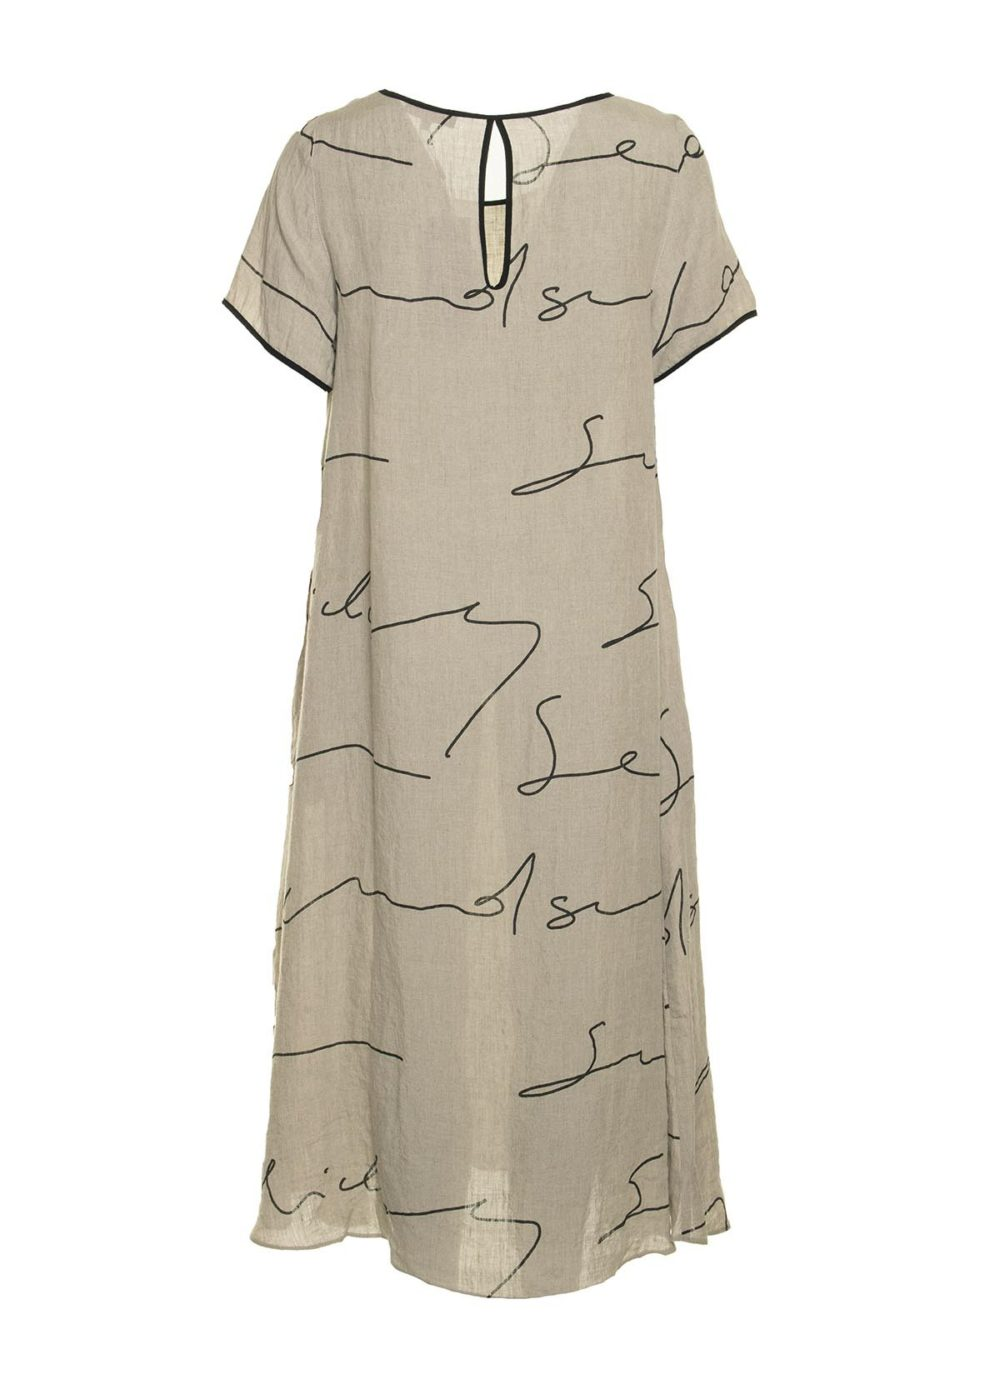 Signature Linen Print Dress Sahara Katie Kerr Women's Clothing